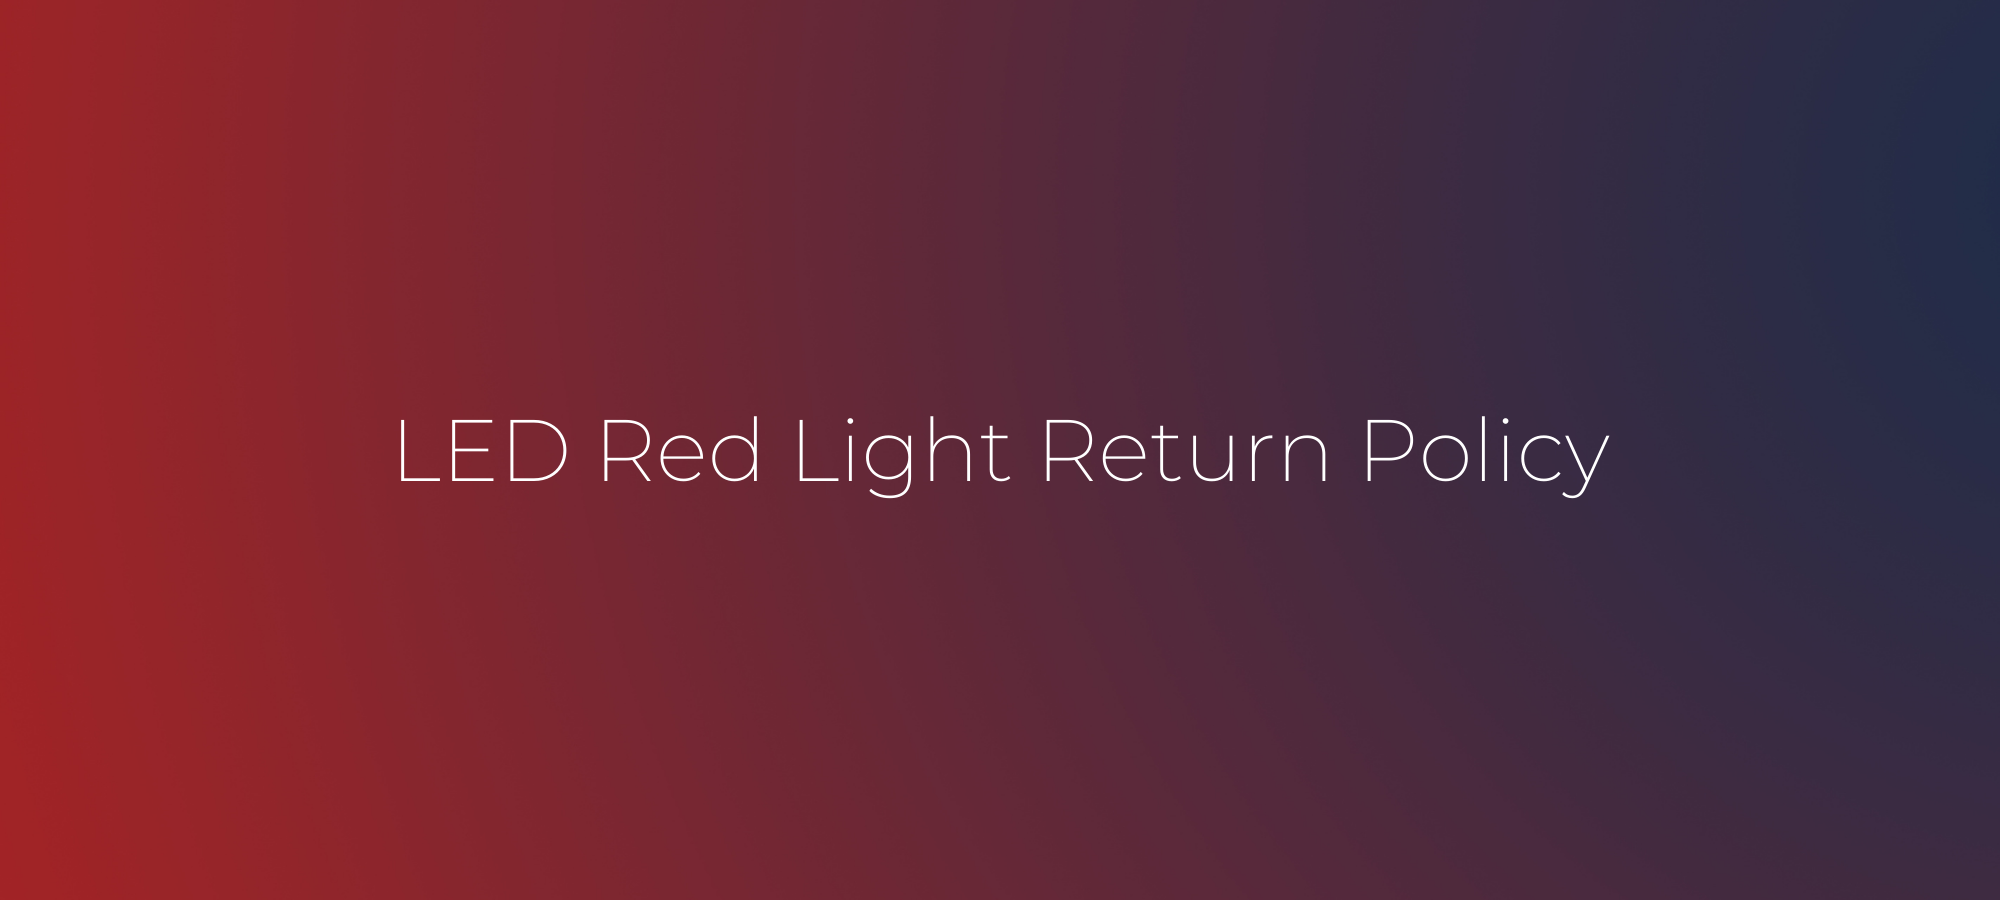 LED Red Light Return Policy